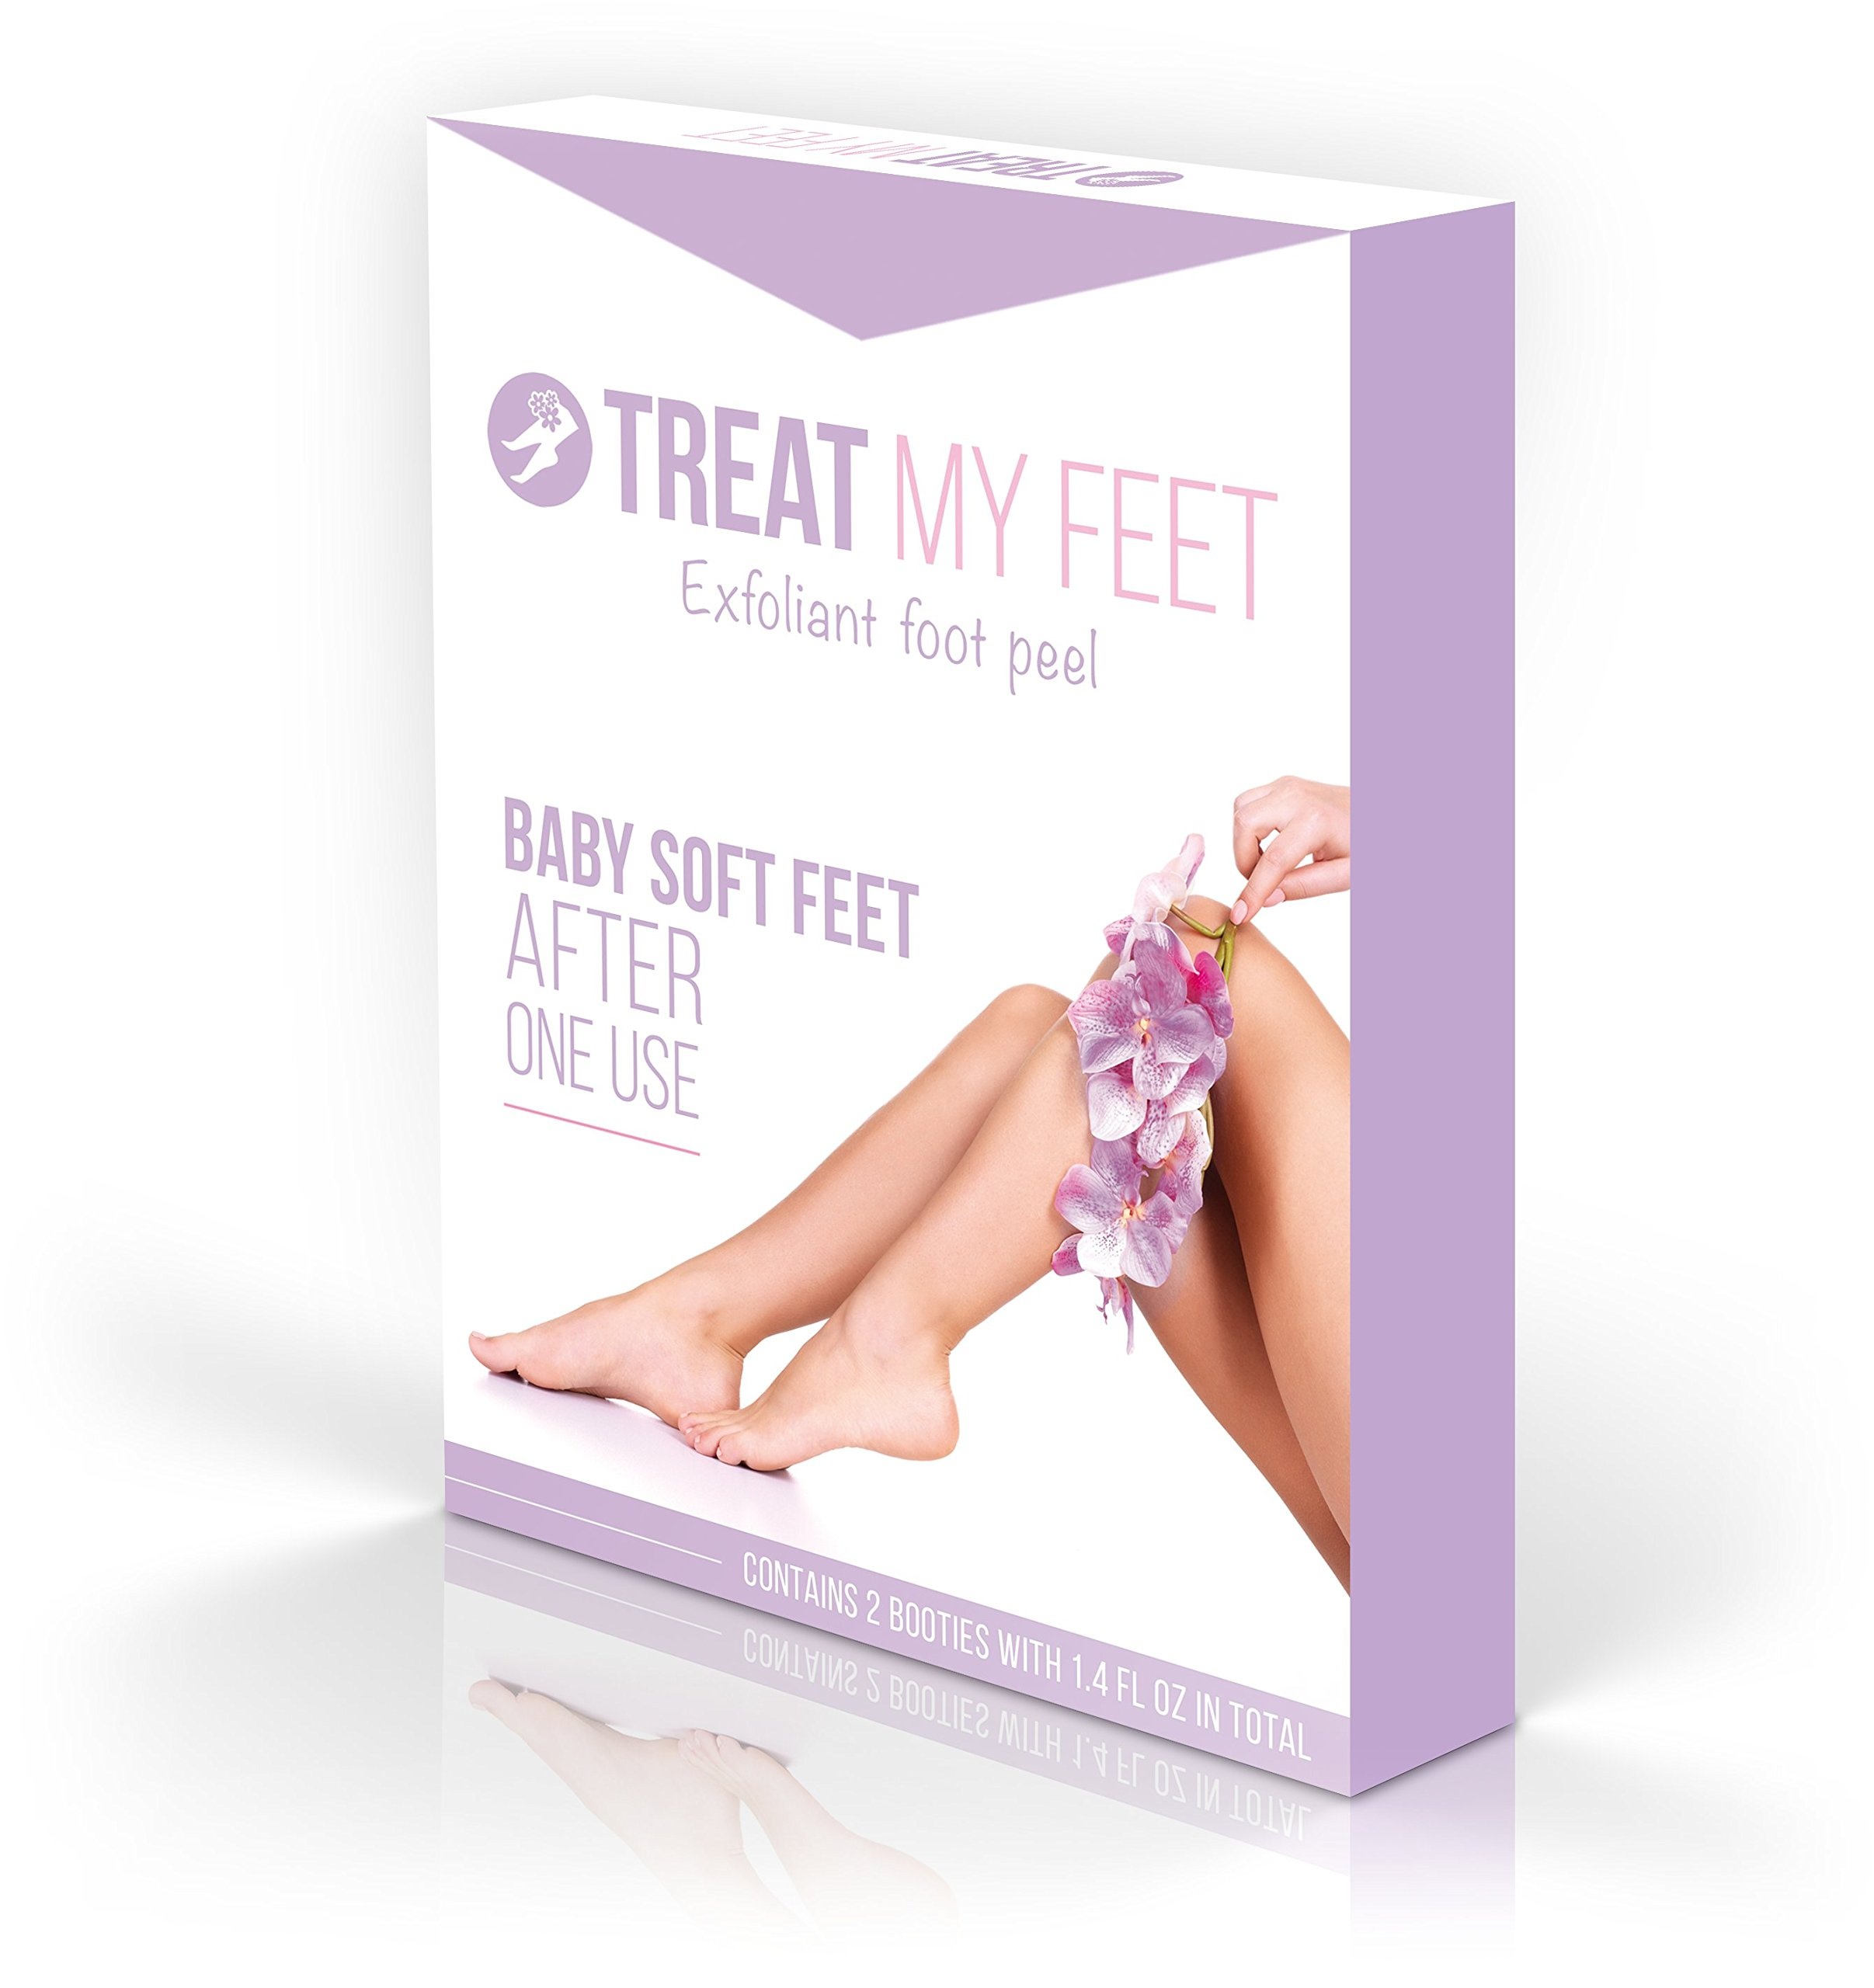 A Softer Foot Peel & Foot Mask to Exfoliate Feet, Repair Rough Heels, Peeling Away Dry Dead Skin, Callus Remover Treatment, Smooth Cracked Heels Pack with Two Foot Cream & Lotion Scrub Socks!